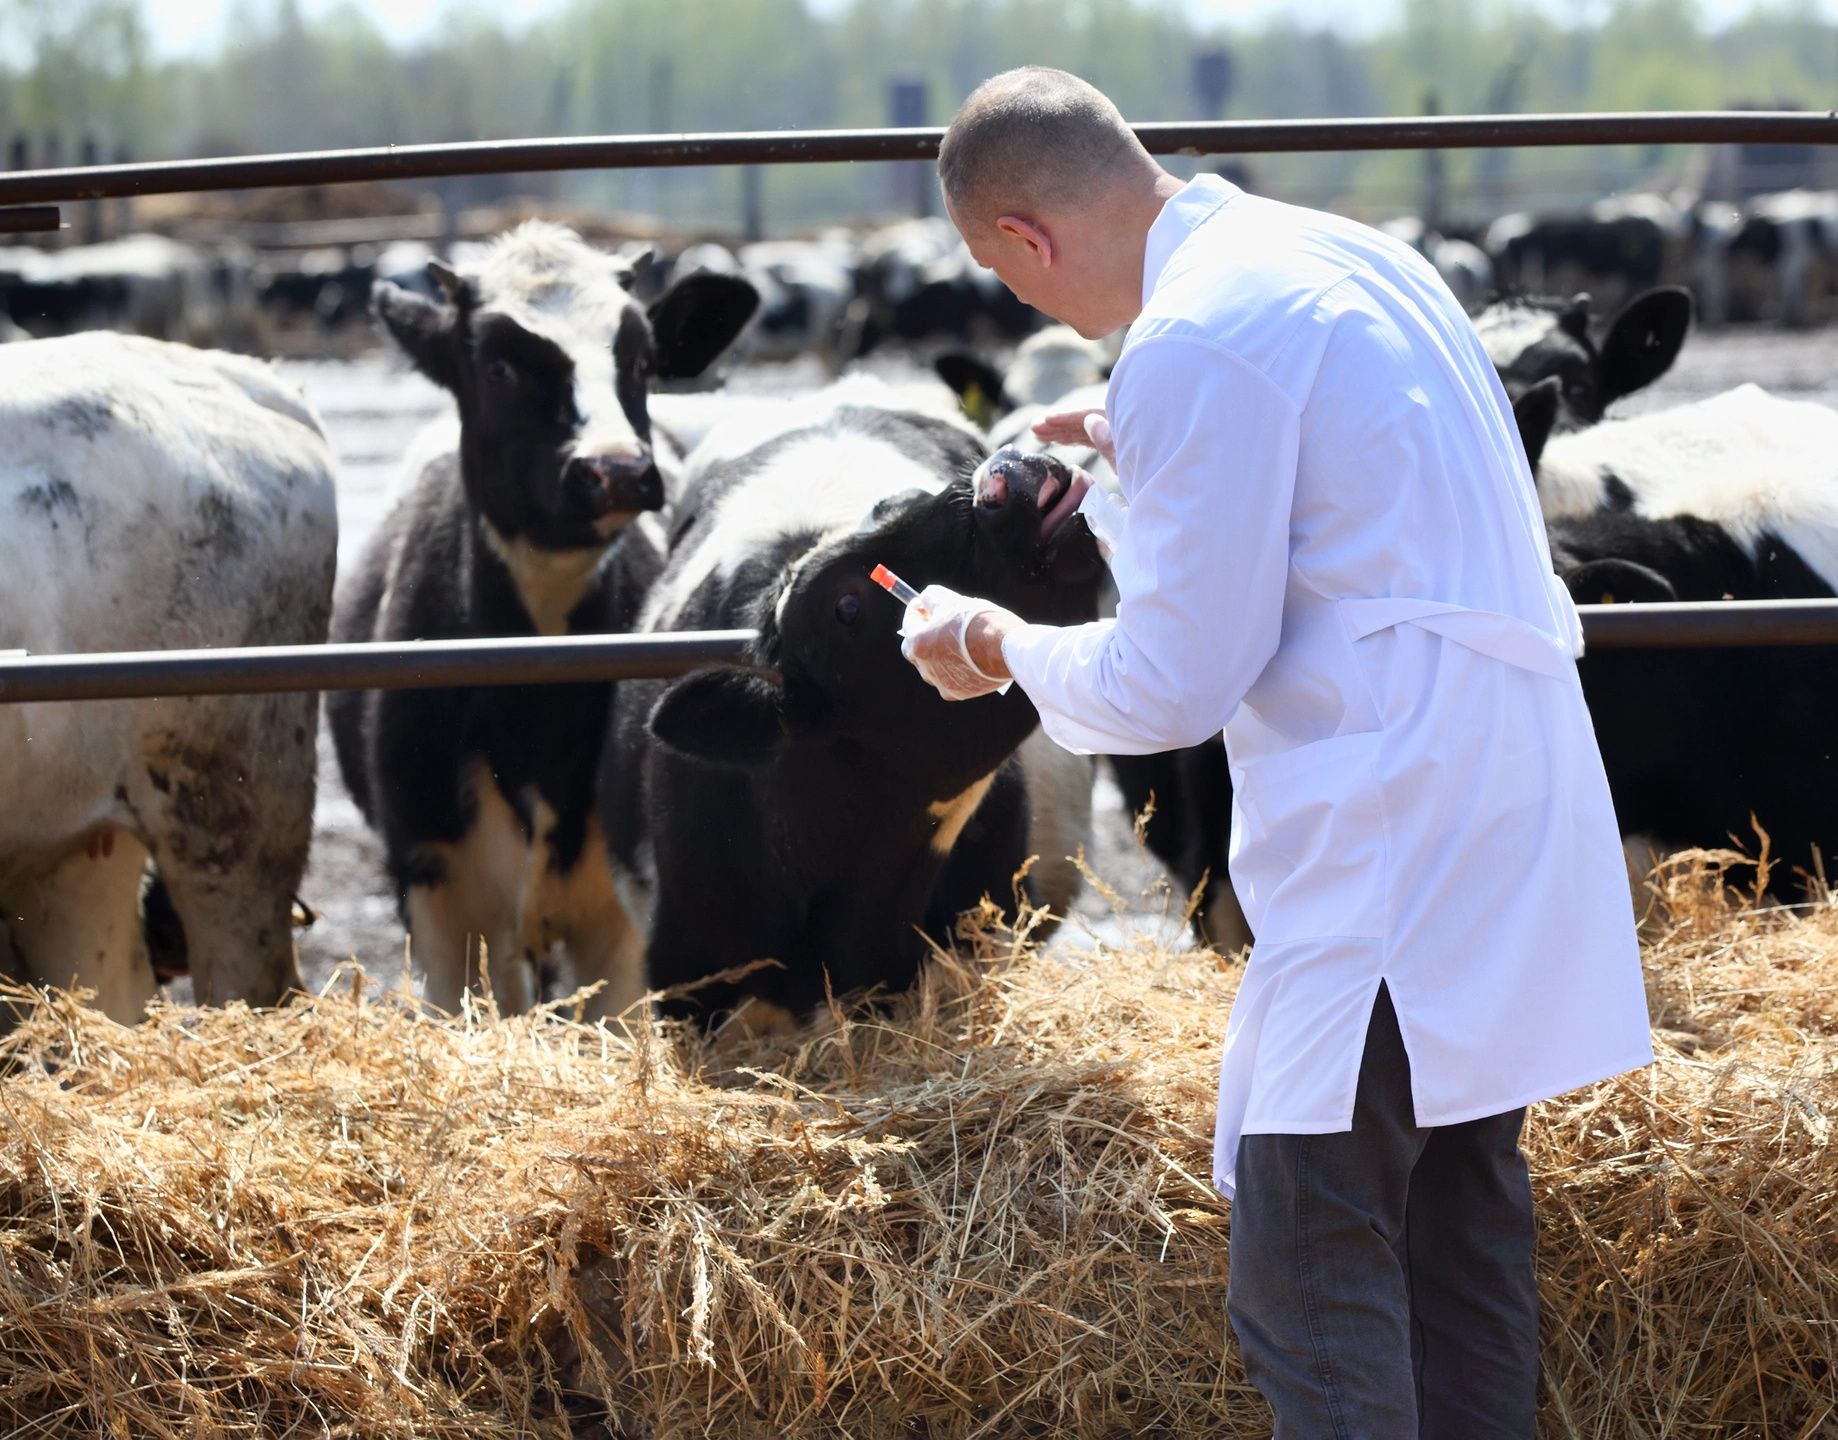 Vet with cows